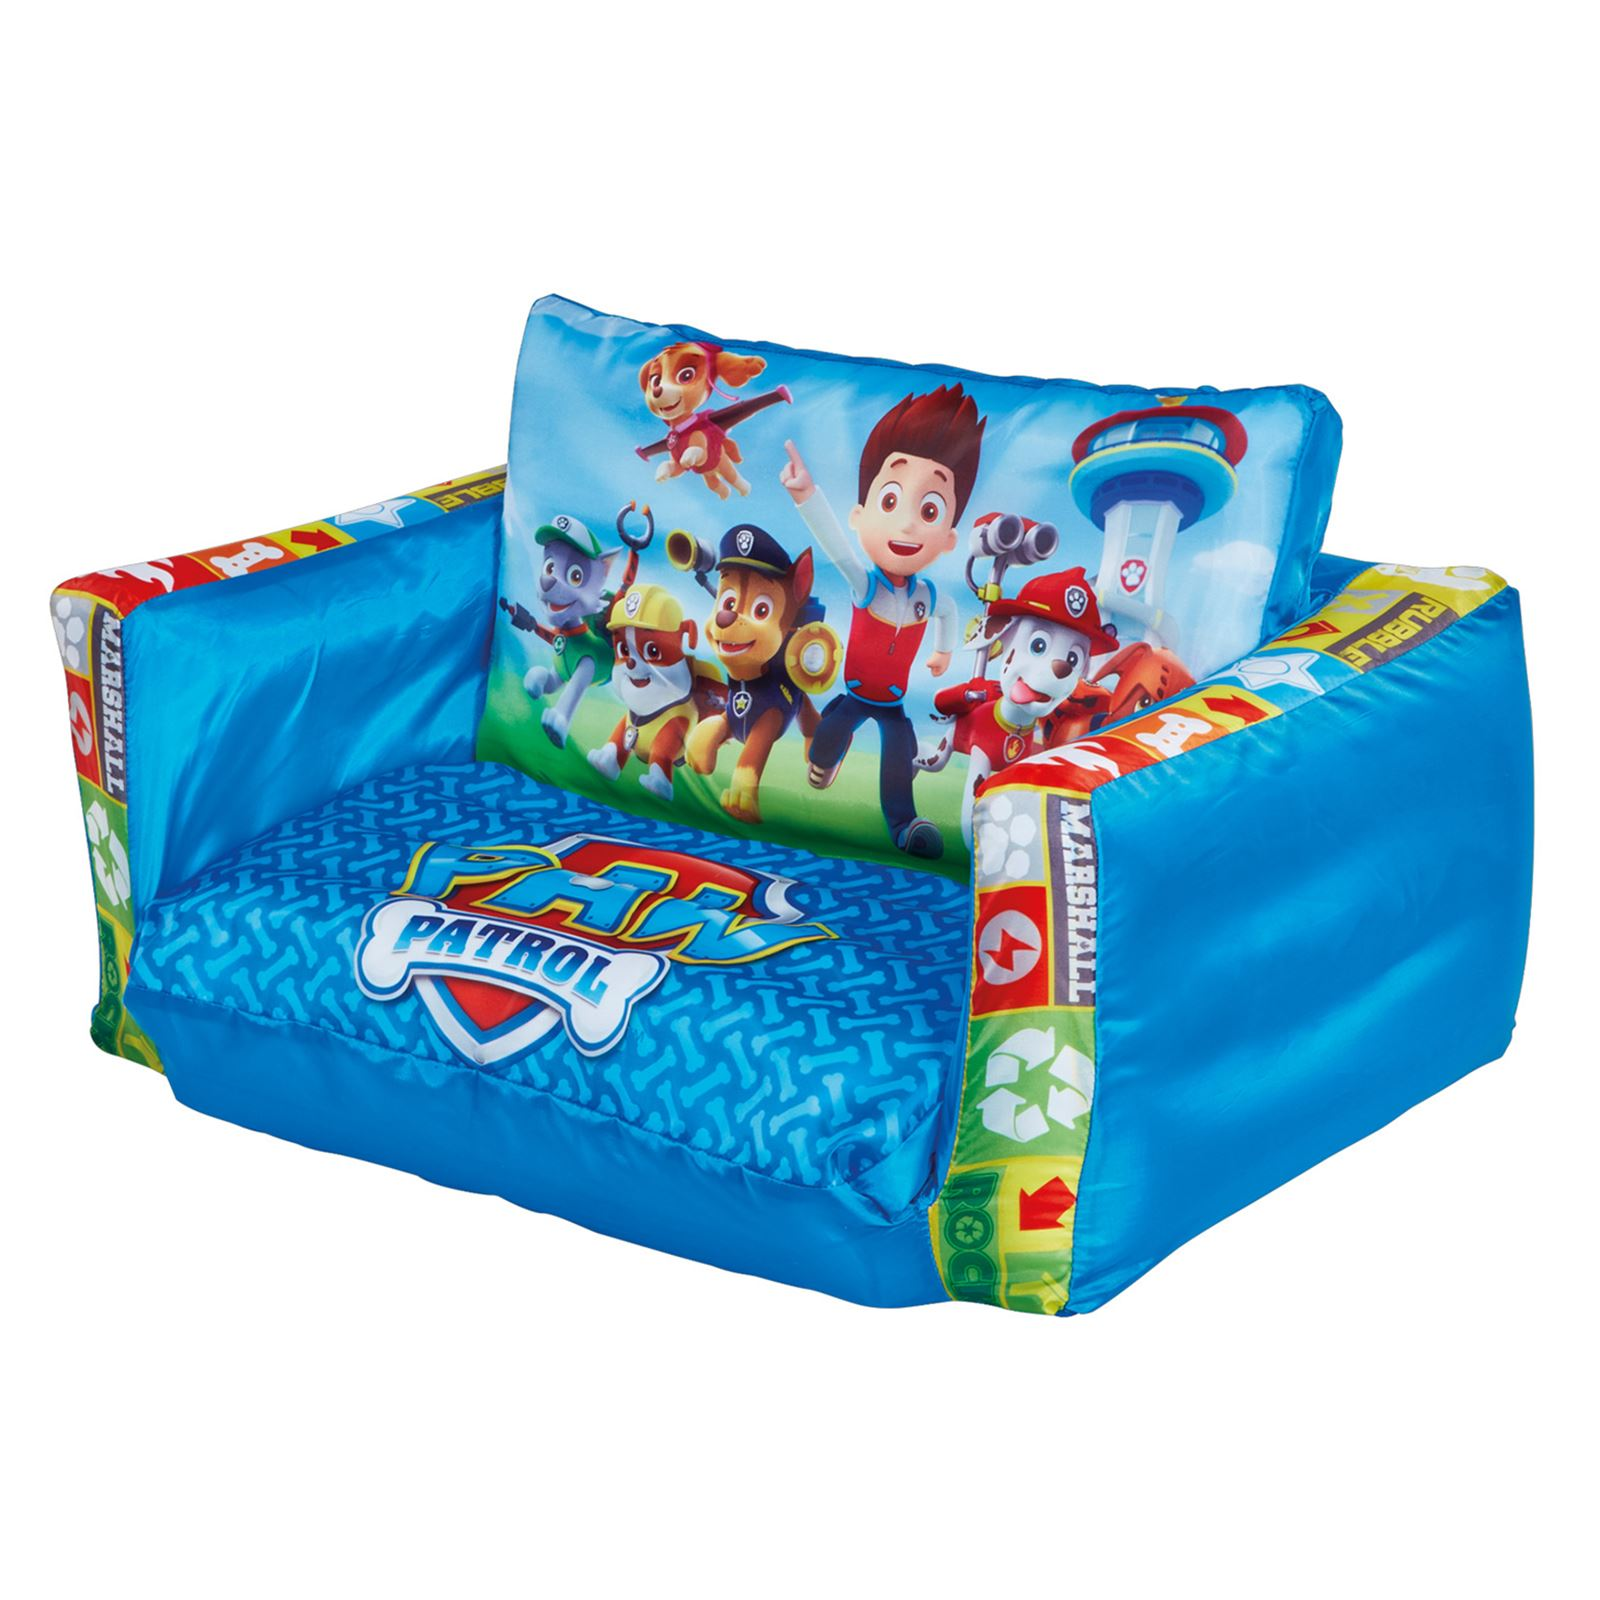 Flip out sofa range inflatable kids room new minions frozen paw patrol more ebay Kids lounge sofa